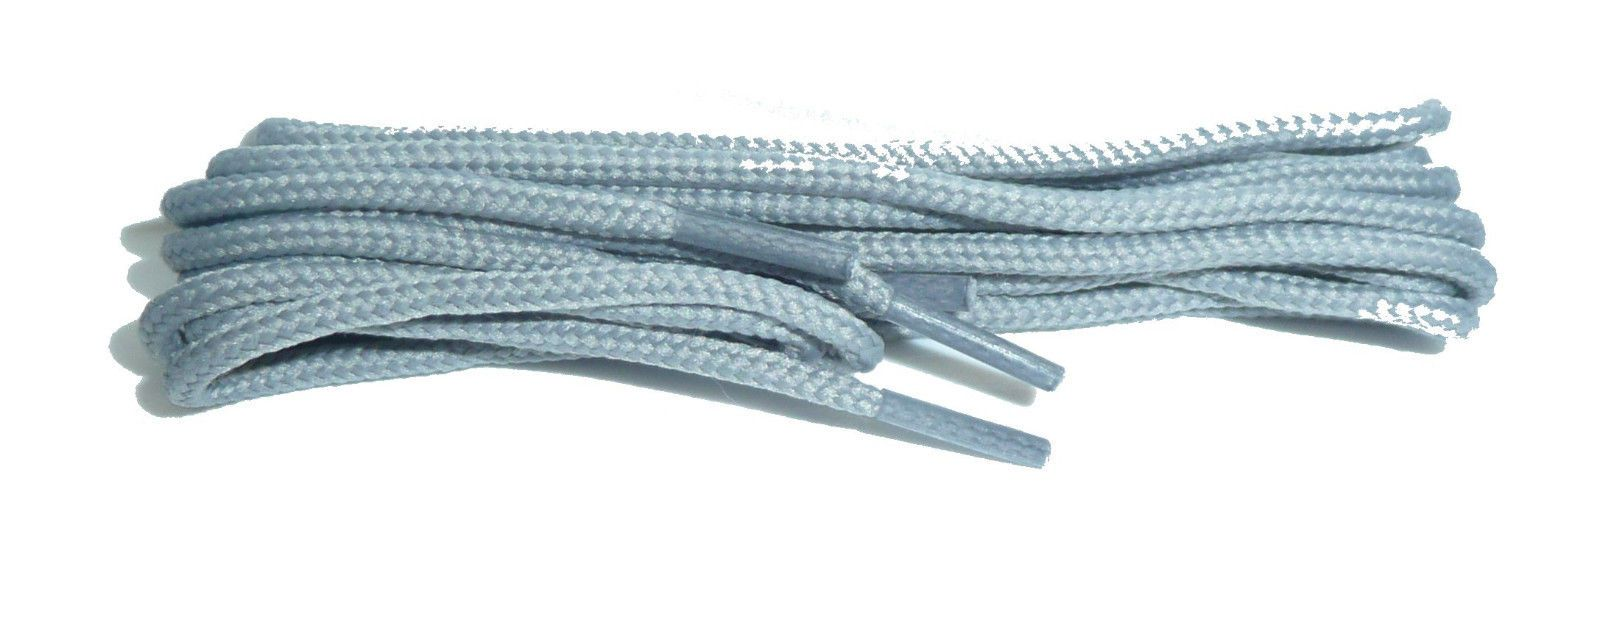 64ce0a4517d98 BRITISH Silver Grey Shoe and Boot Laces in THIN ROUND all lengths ...